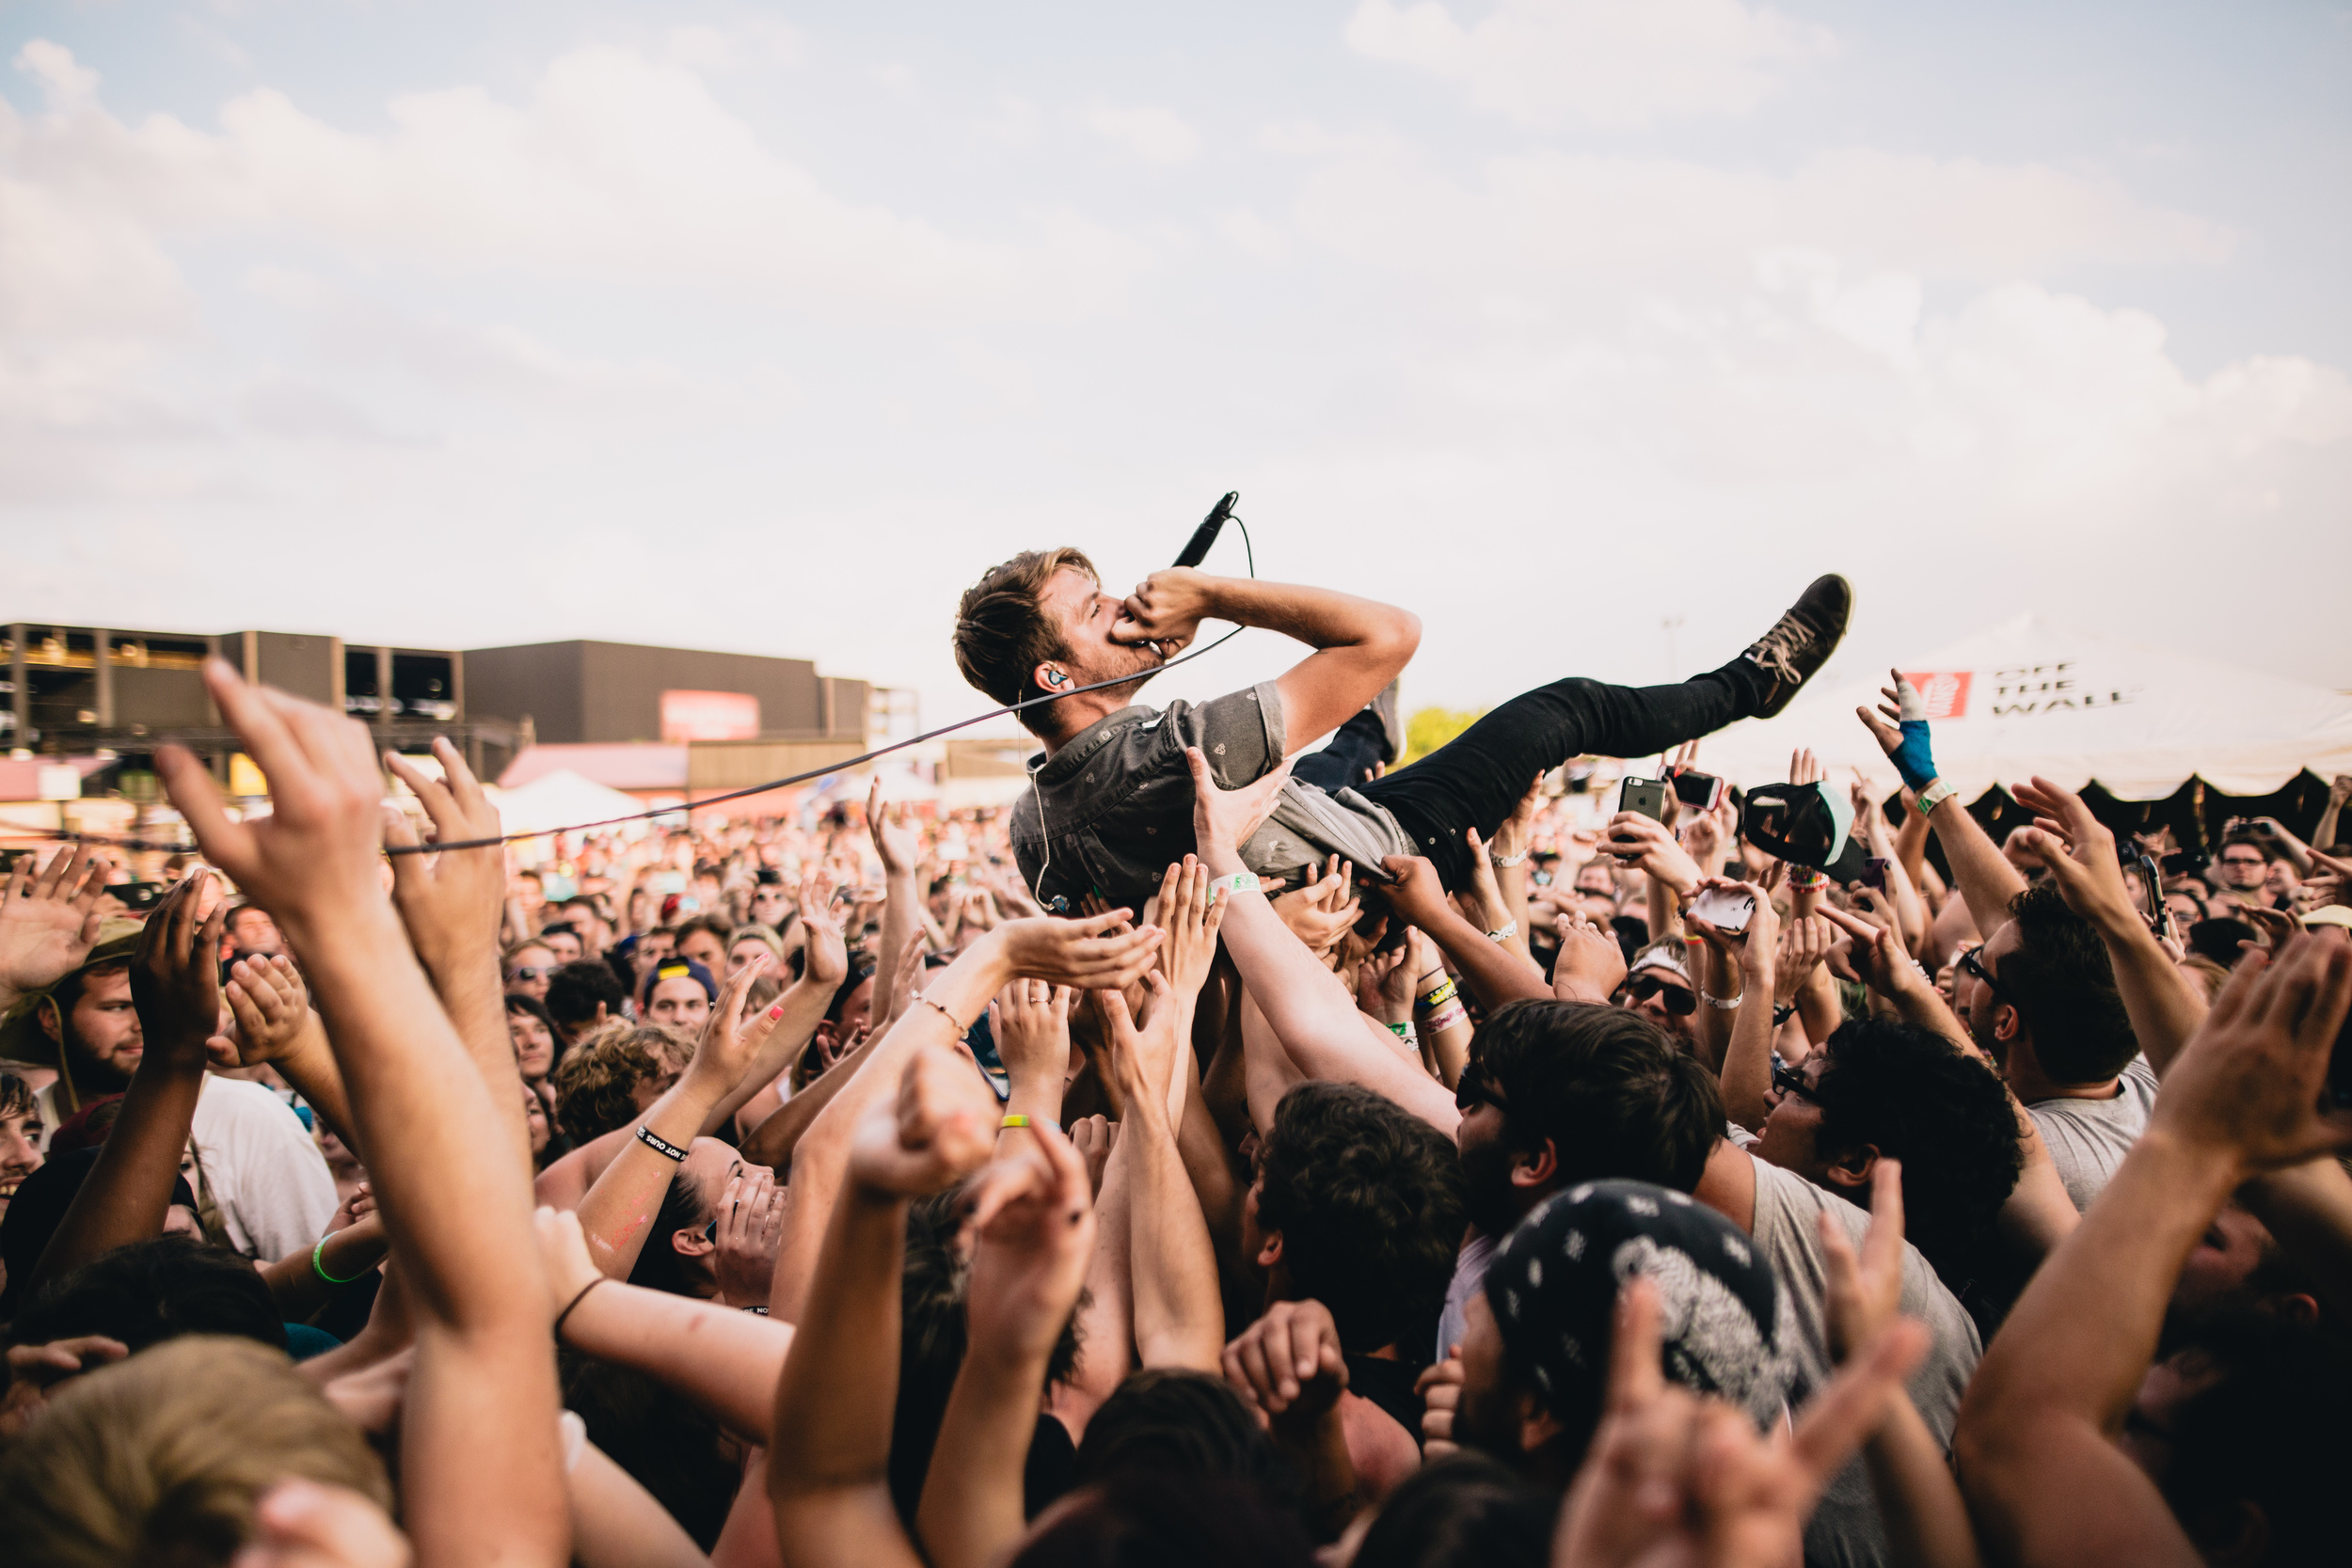 Hands Like Houses. Security physically ripped me down from the barrier about a quarter second after I took this.